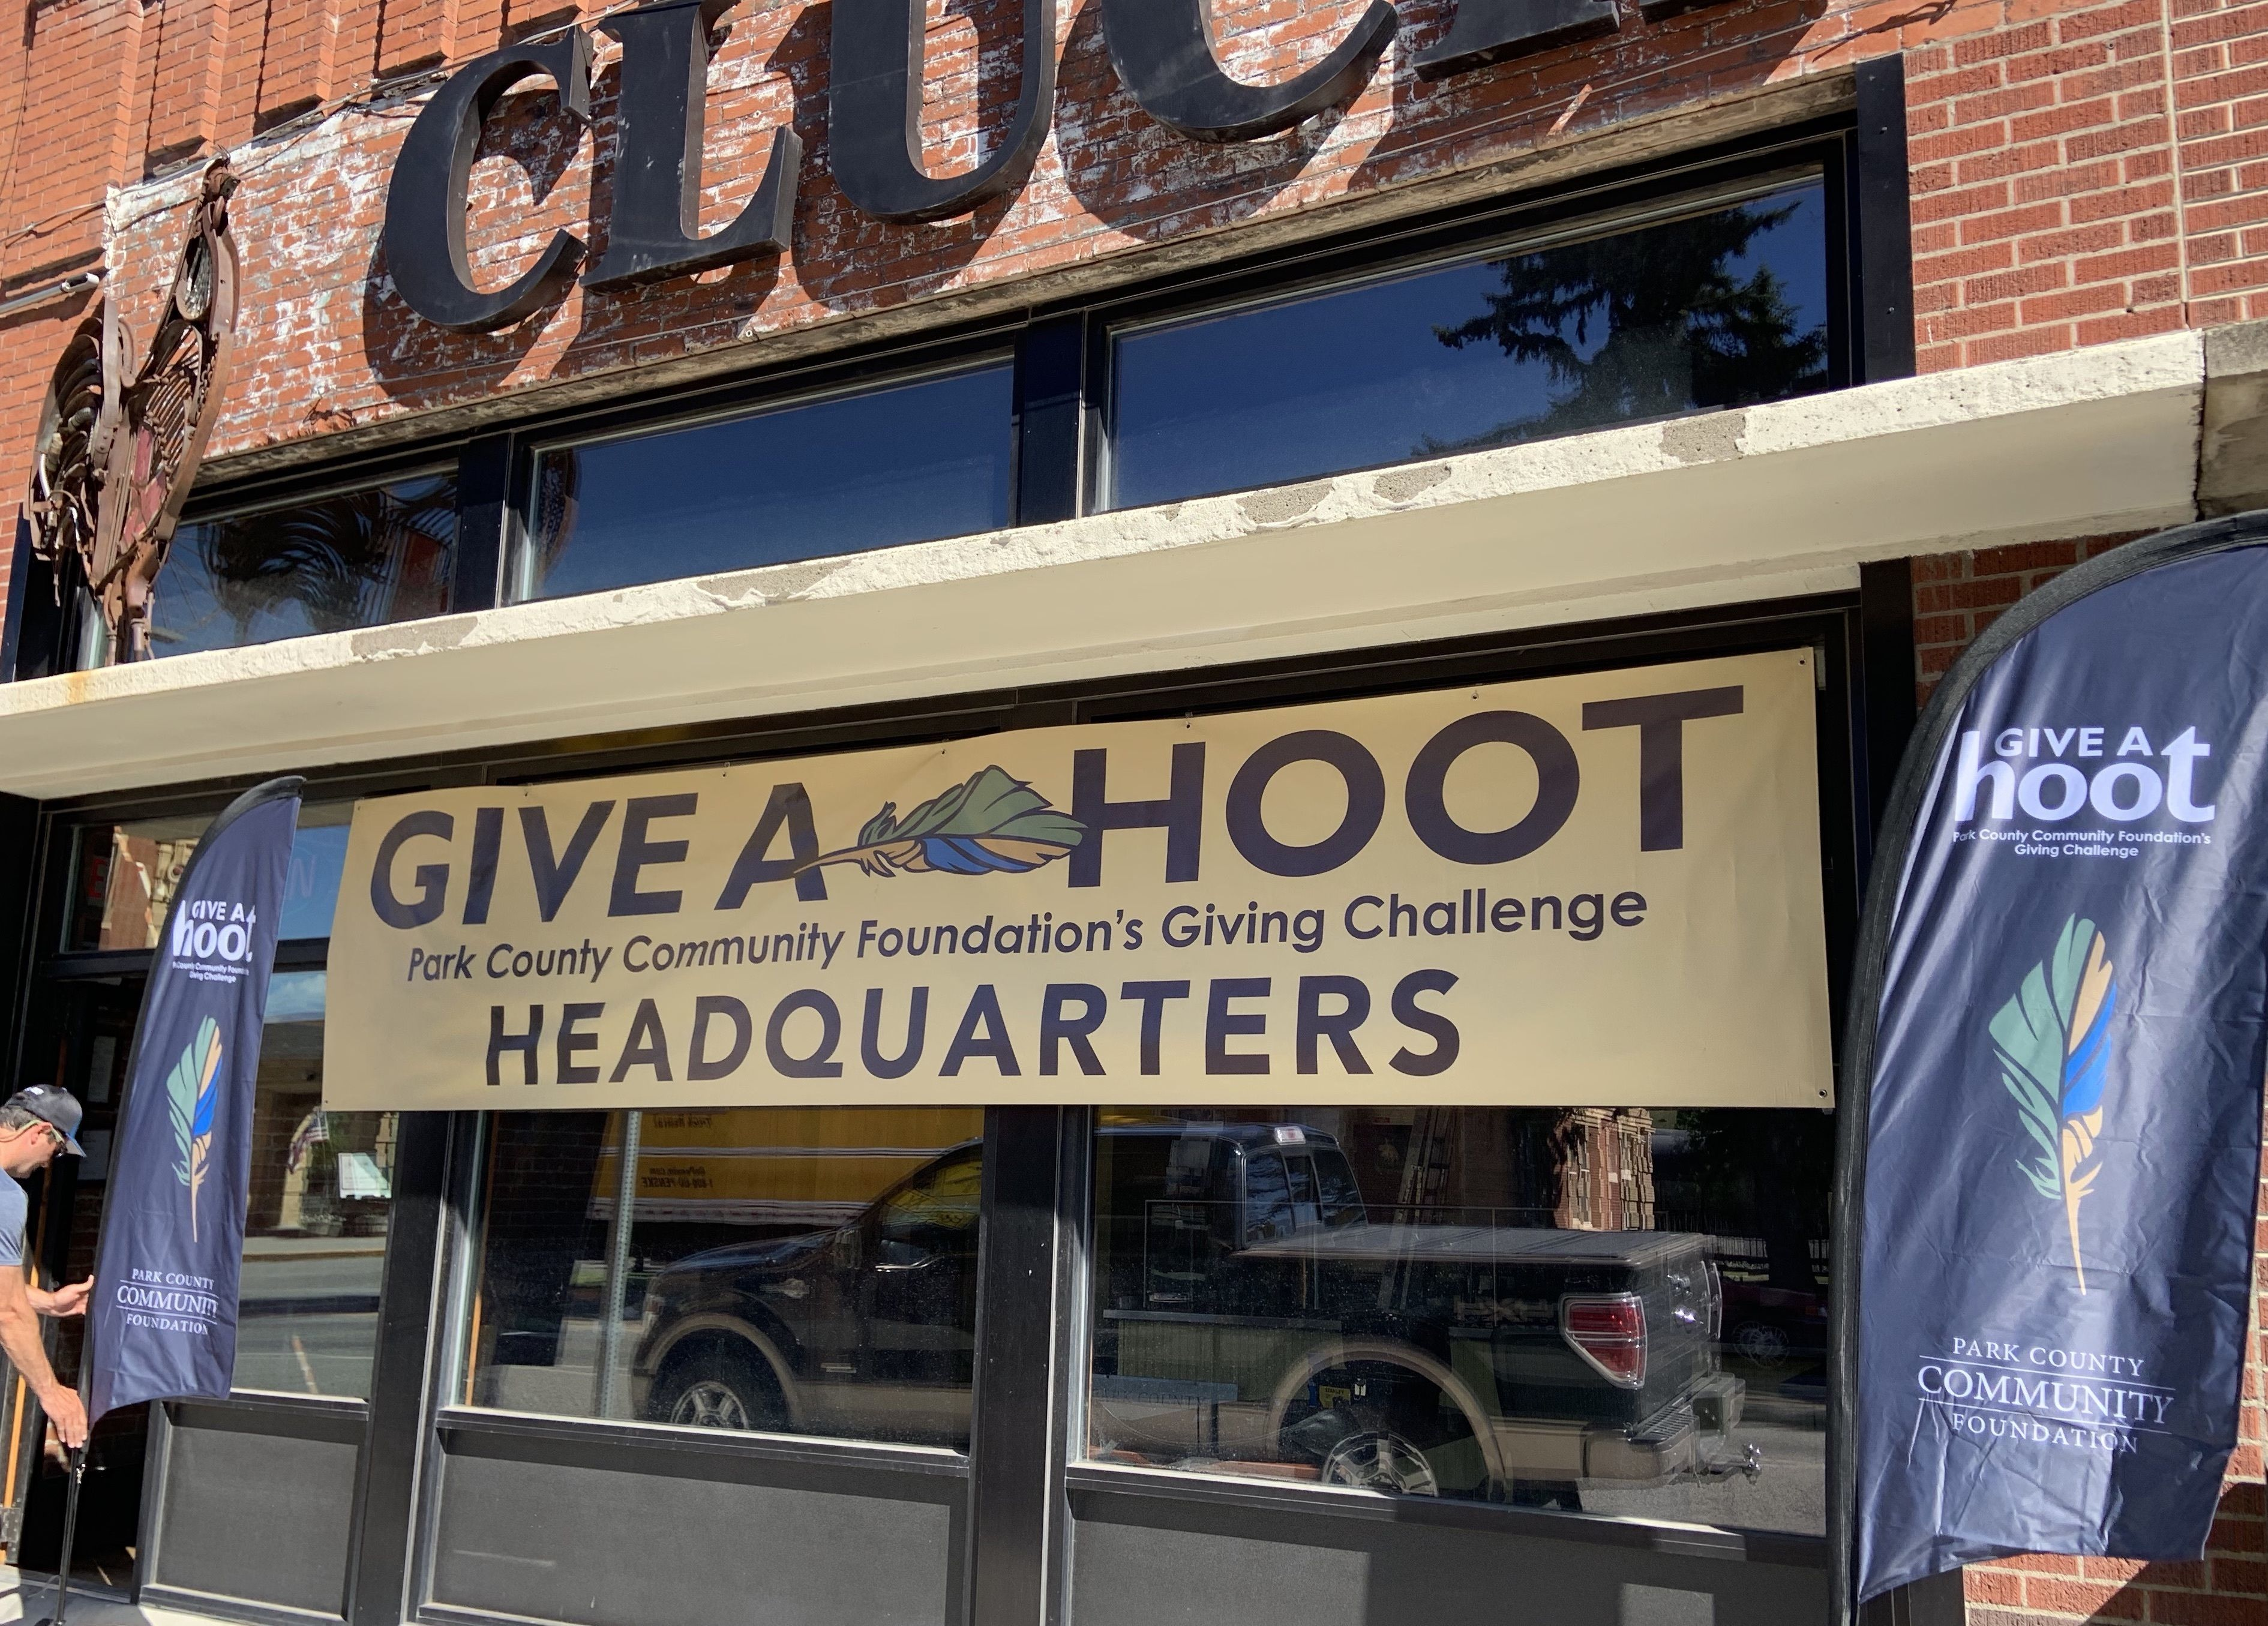 Visit our new office: Give a Hoot Headquarters!